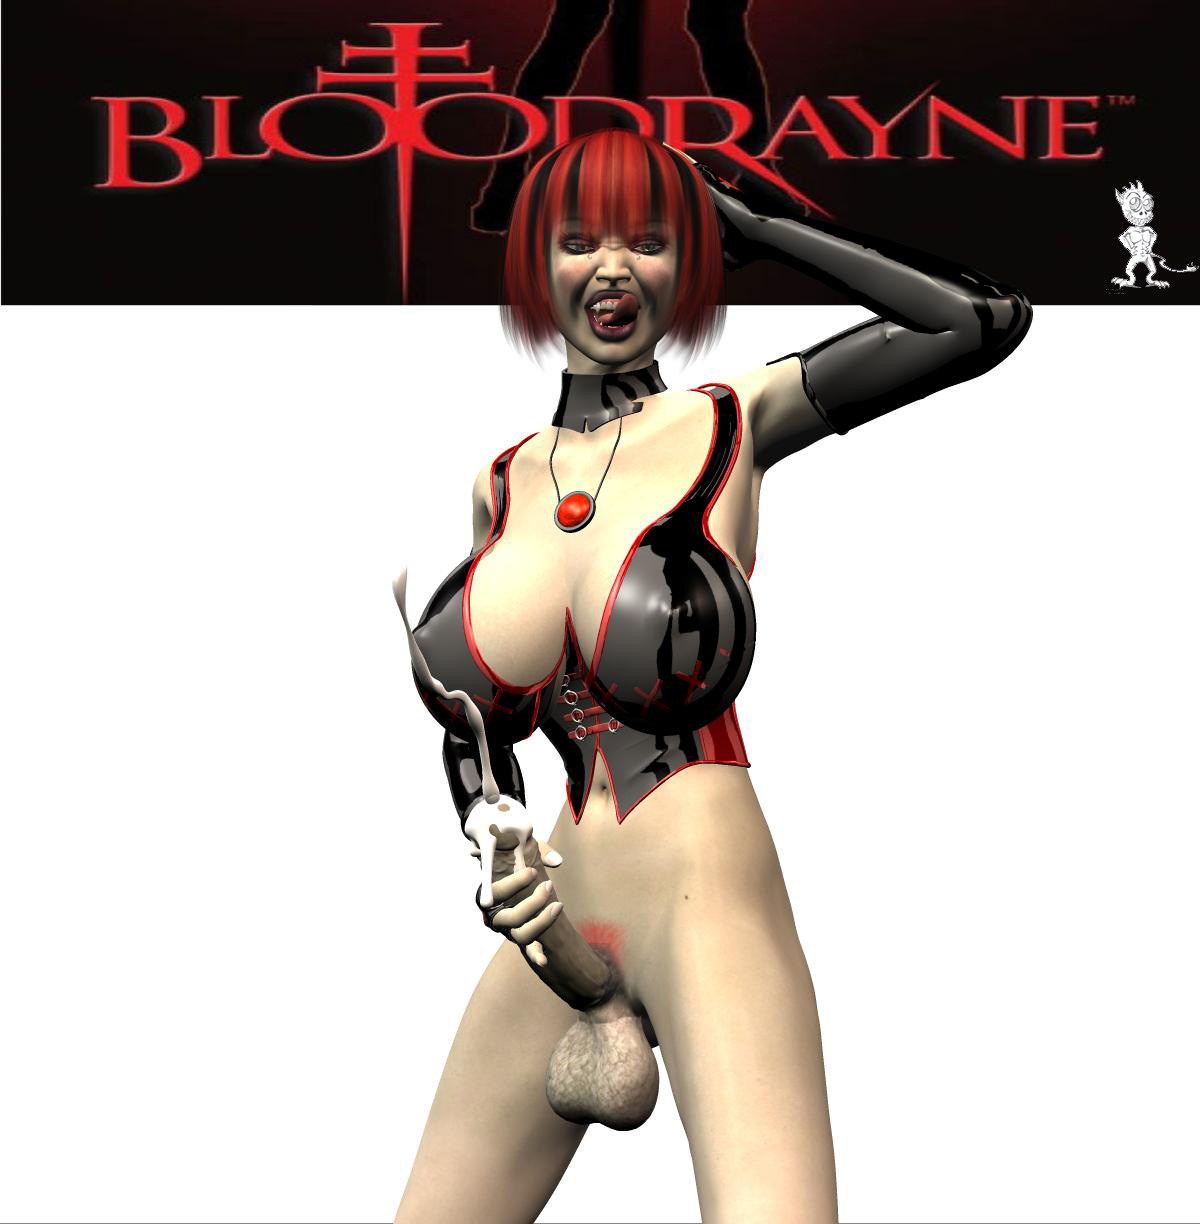 Bloodrayne 2 fuck patch erotic videos